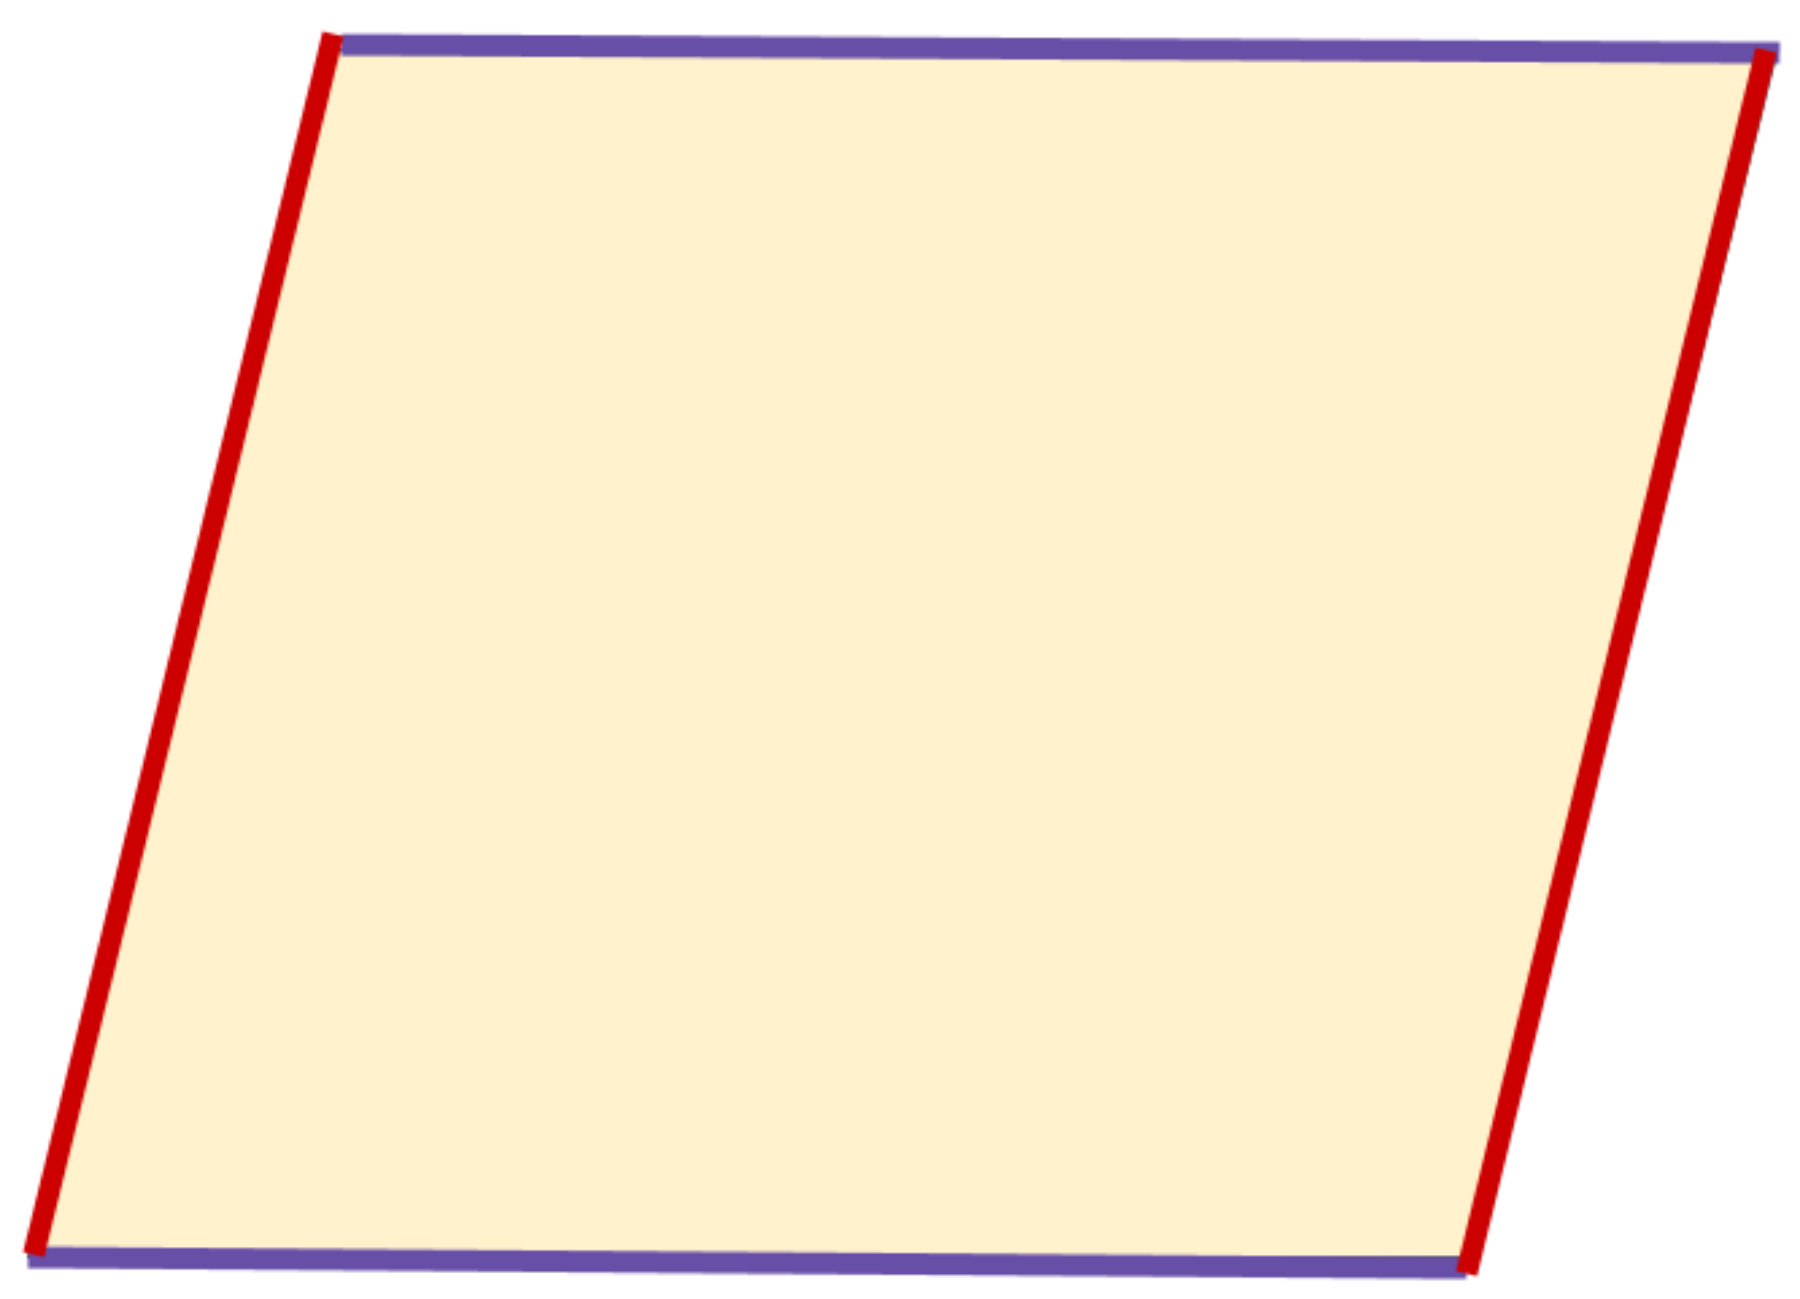 the pair of sides in a parallelogram that are parallel